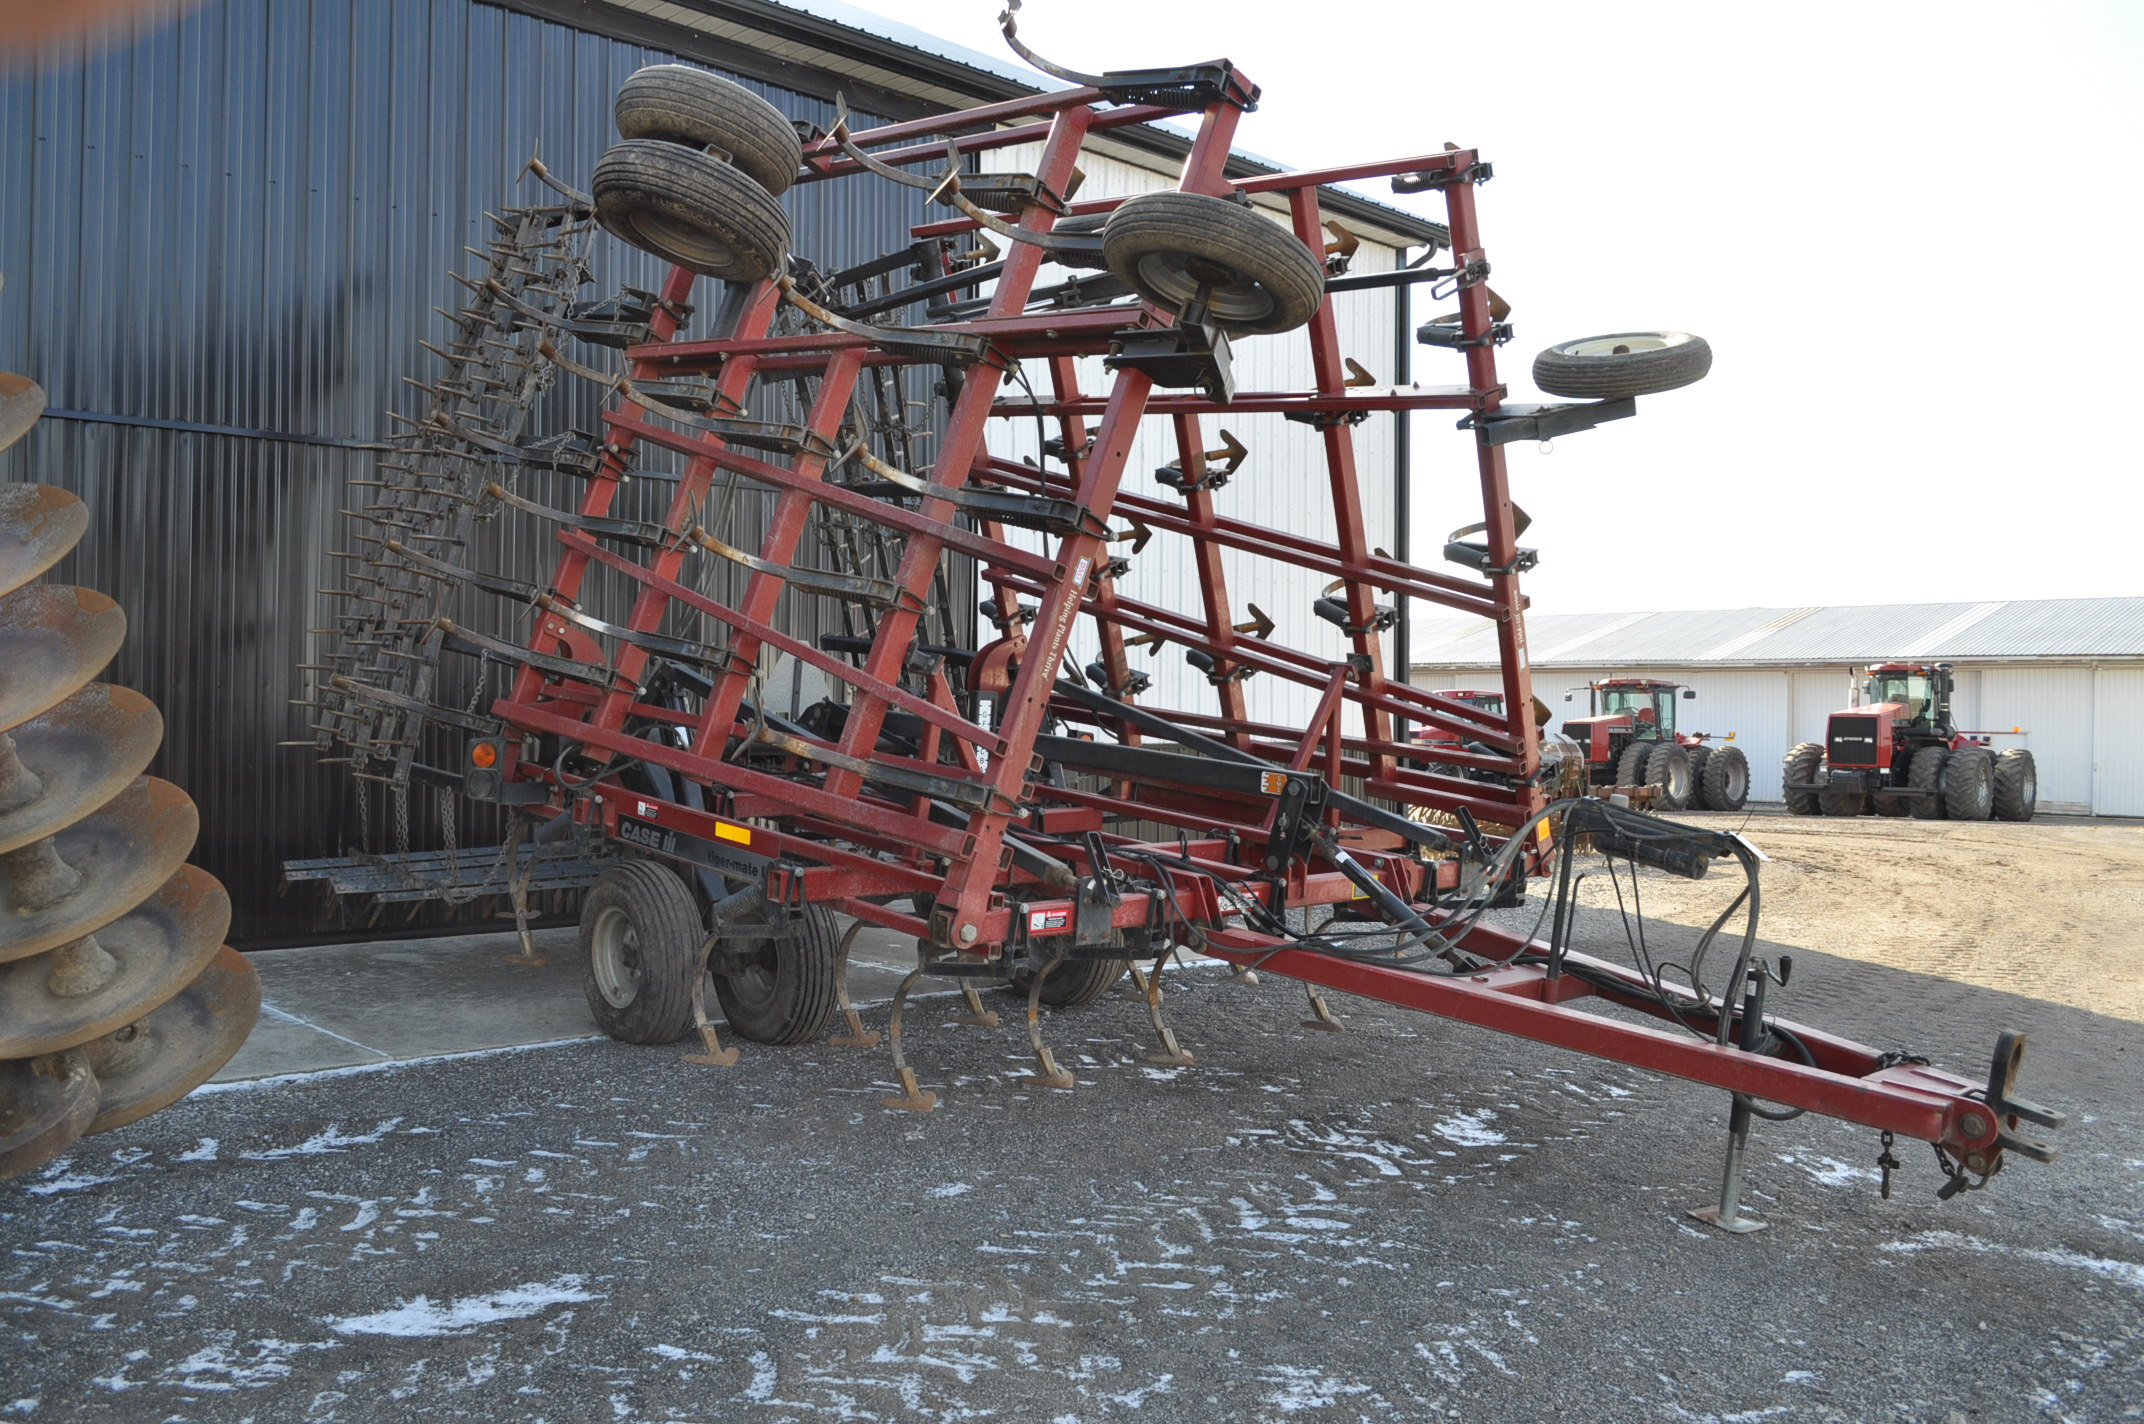 30' Case IH TigerMate II field cultivator, walking tandems, 5 bar spike tooth harrow, rear hitch and - Image 2 of 12